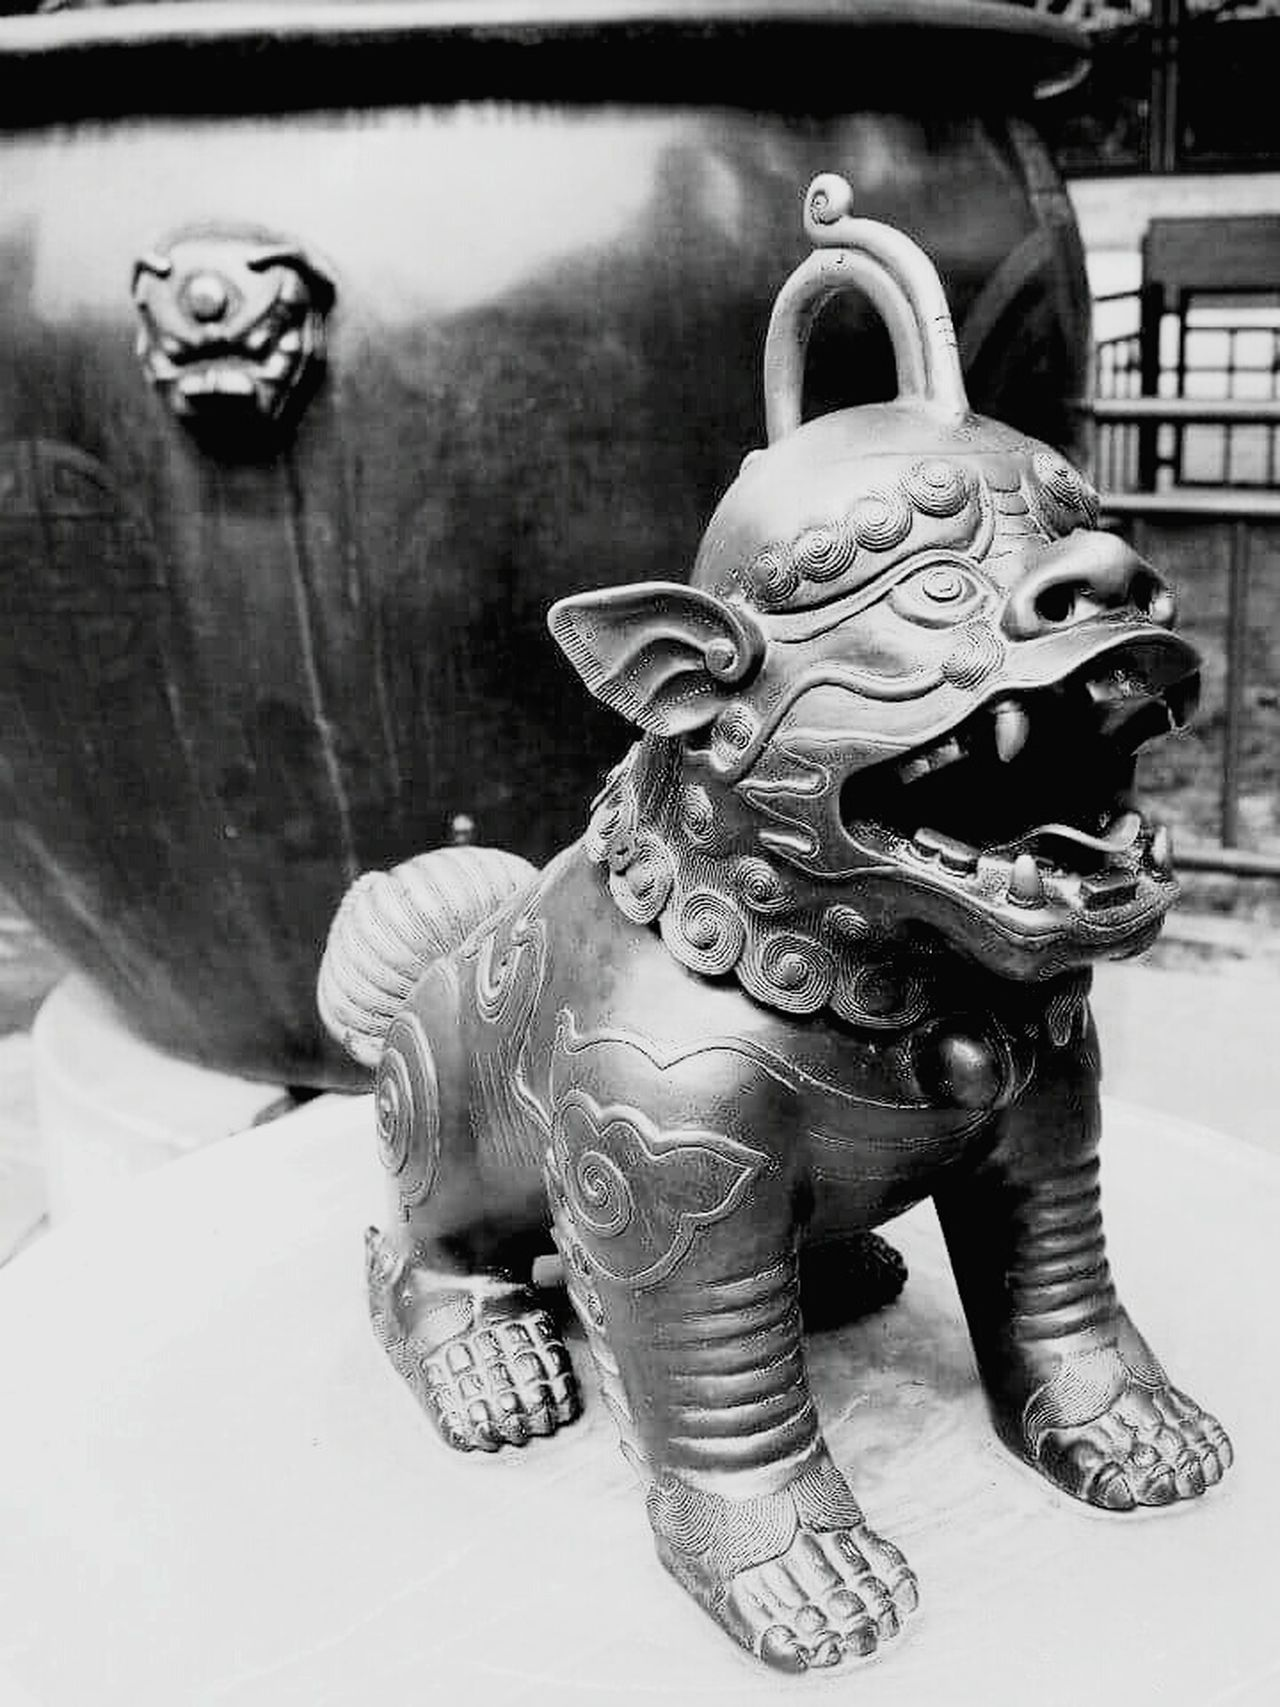 Blackandwhite Sculpture Statue Close-up Liondog Chinese Culture Forbidden City Bronze Bronze Statue Guardian Antique History China Cauldron